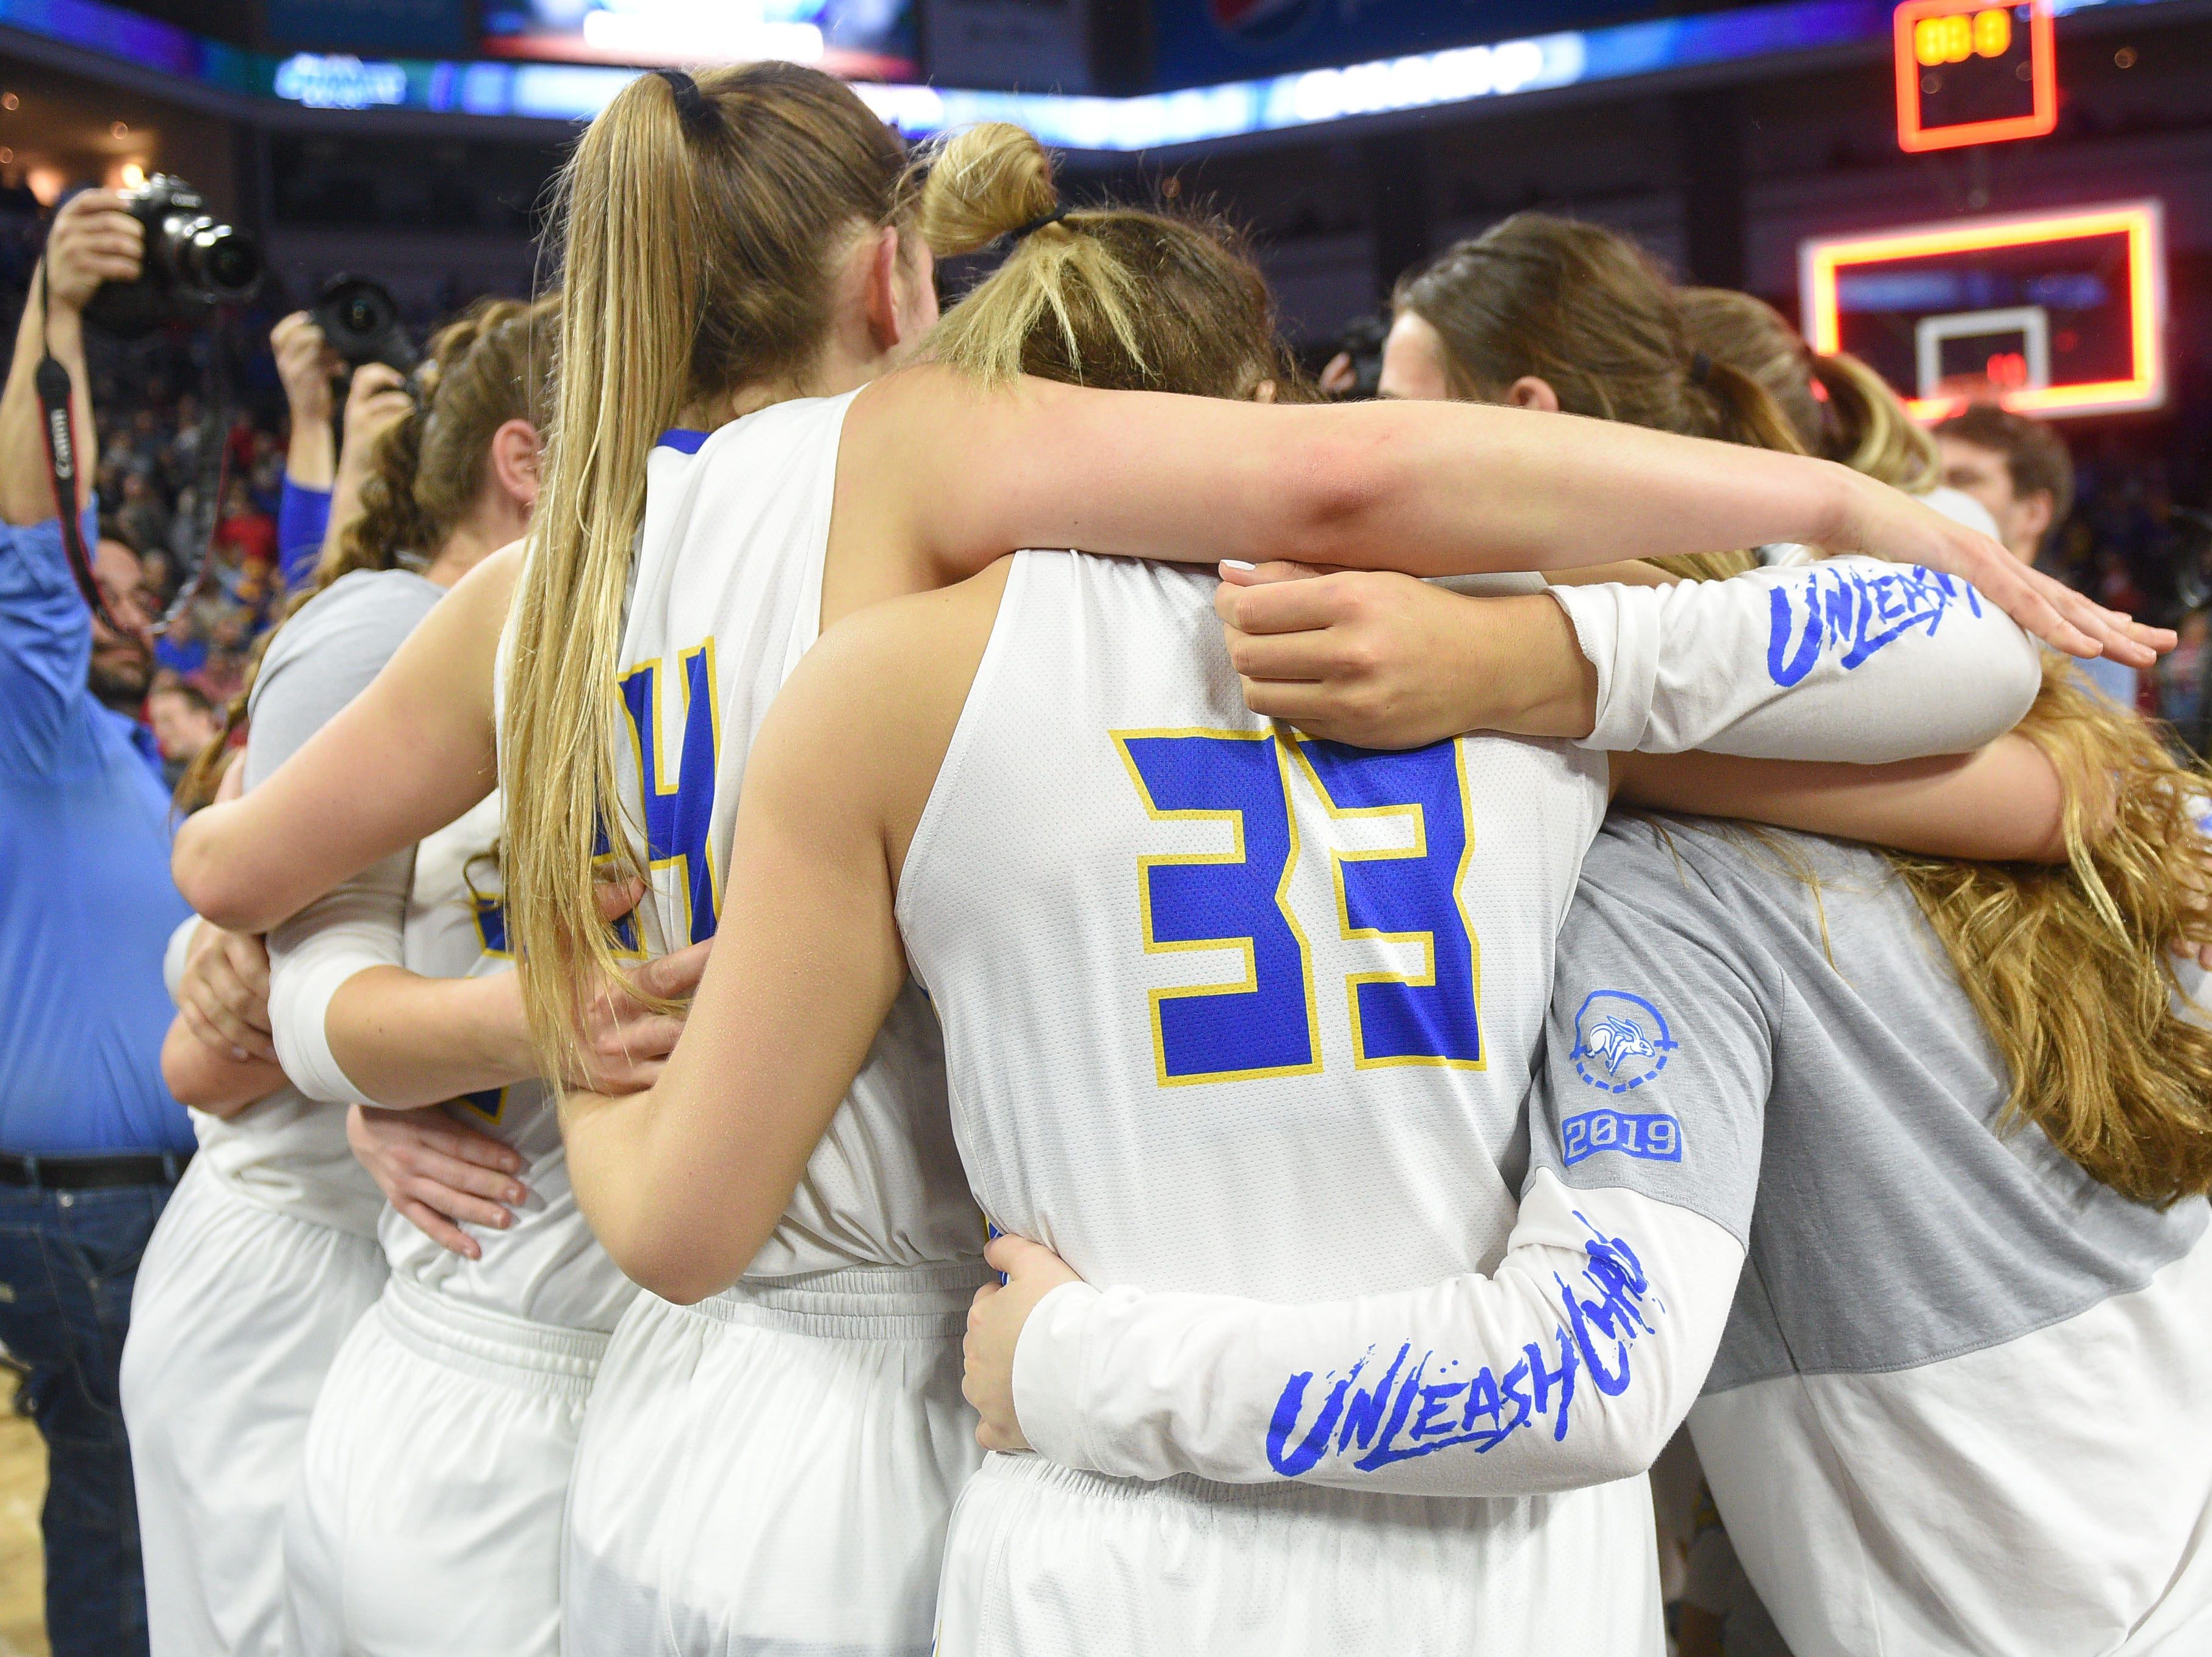 SDSU celebrates their win against USD Tuesday, March 12, in the Summit League women's championship at the Denny Sanford Premier Center in Sioux Falls.